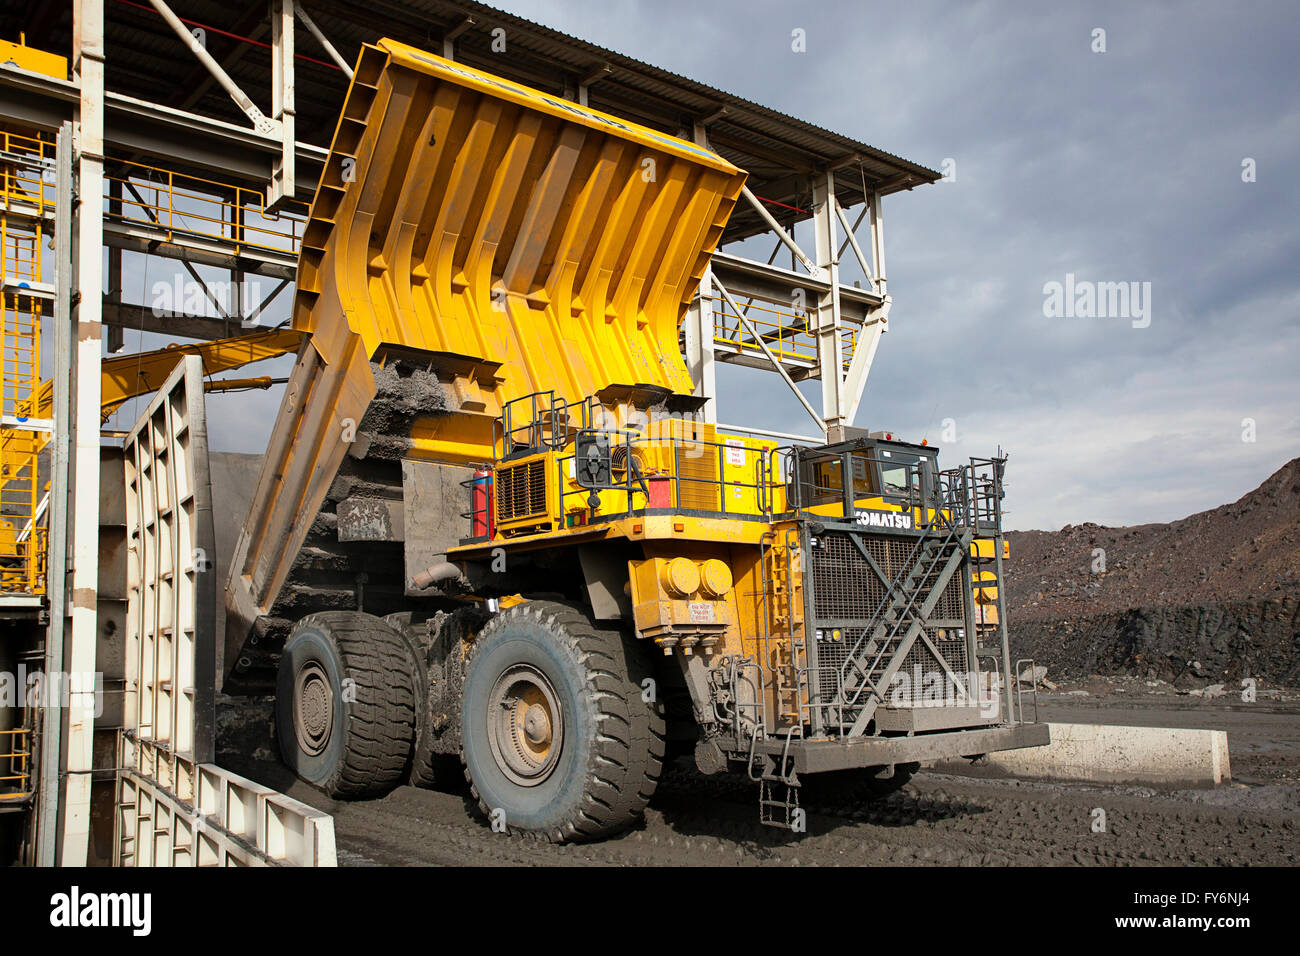 Large dump truck dumping copper ore into giant crusher